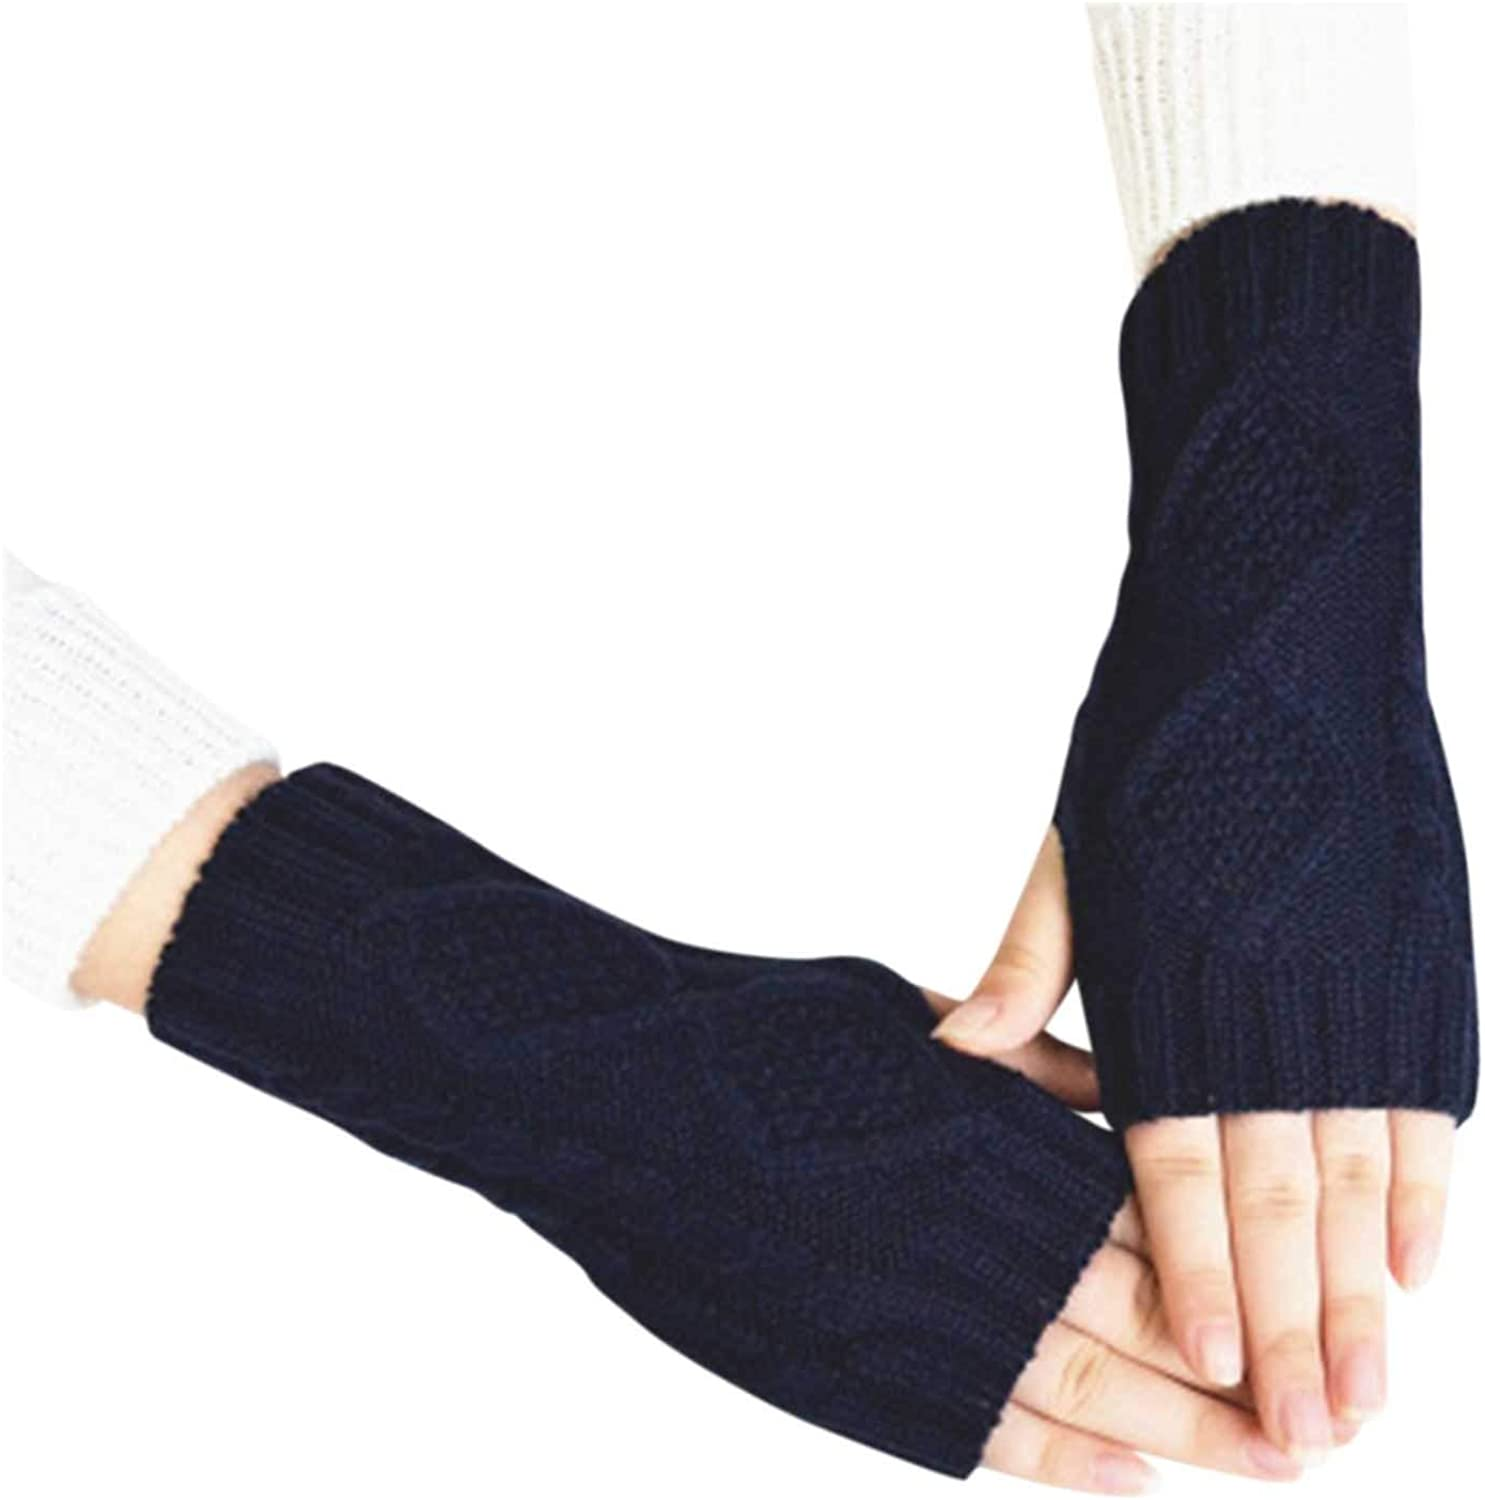 Fingerless Warm Gloves with Thumb Hole Cozy Half Finger Driving Gloves Knit Arm Warmer Mittens for Women